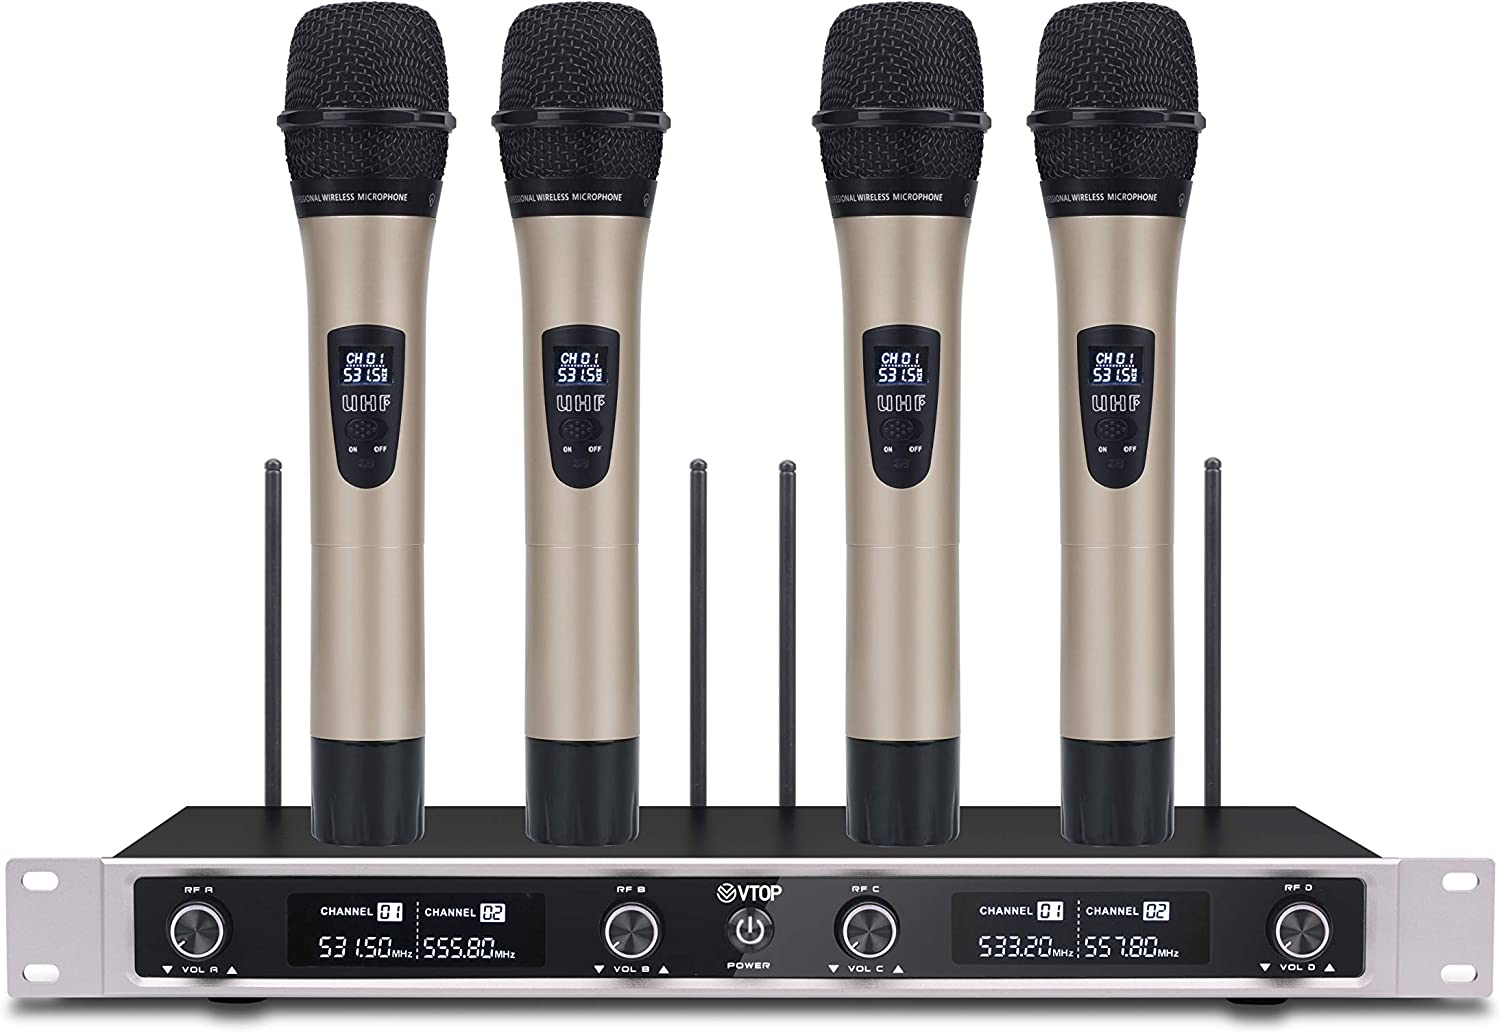 VTOP UHF-400 UHF 4 Channel Wireless Microphone System with Four Metal Handheld Microphone for Party/Wedding/Church/Conference/Speech